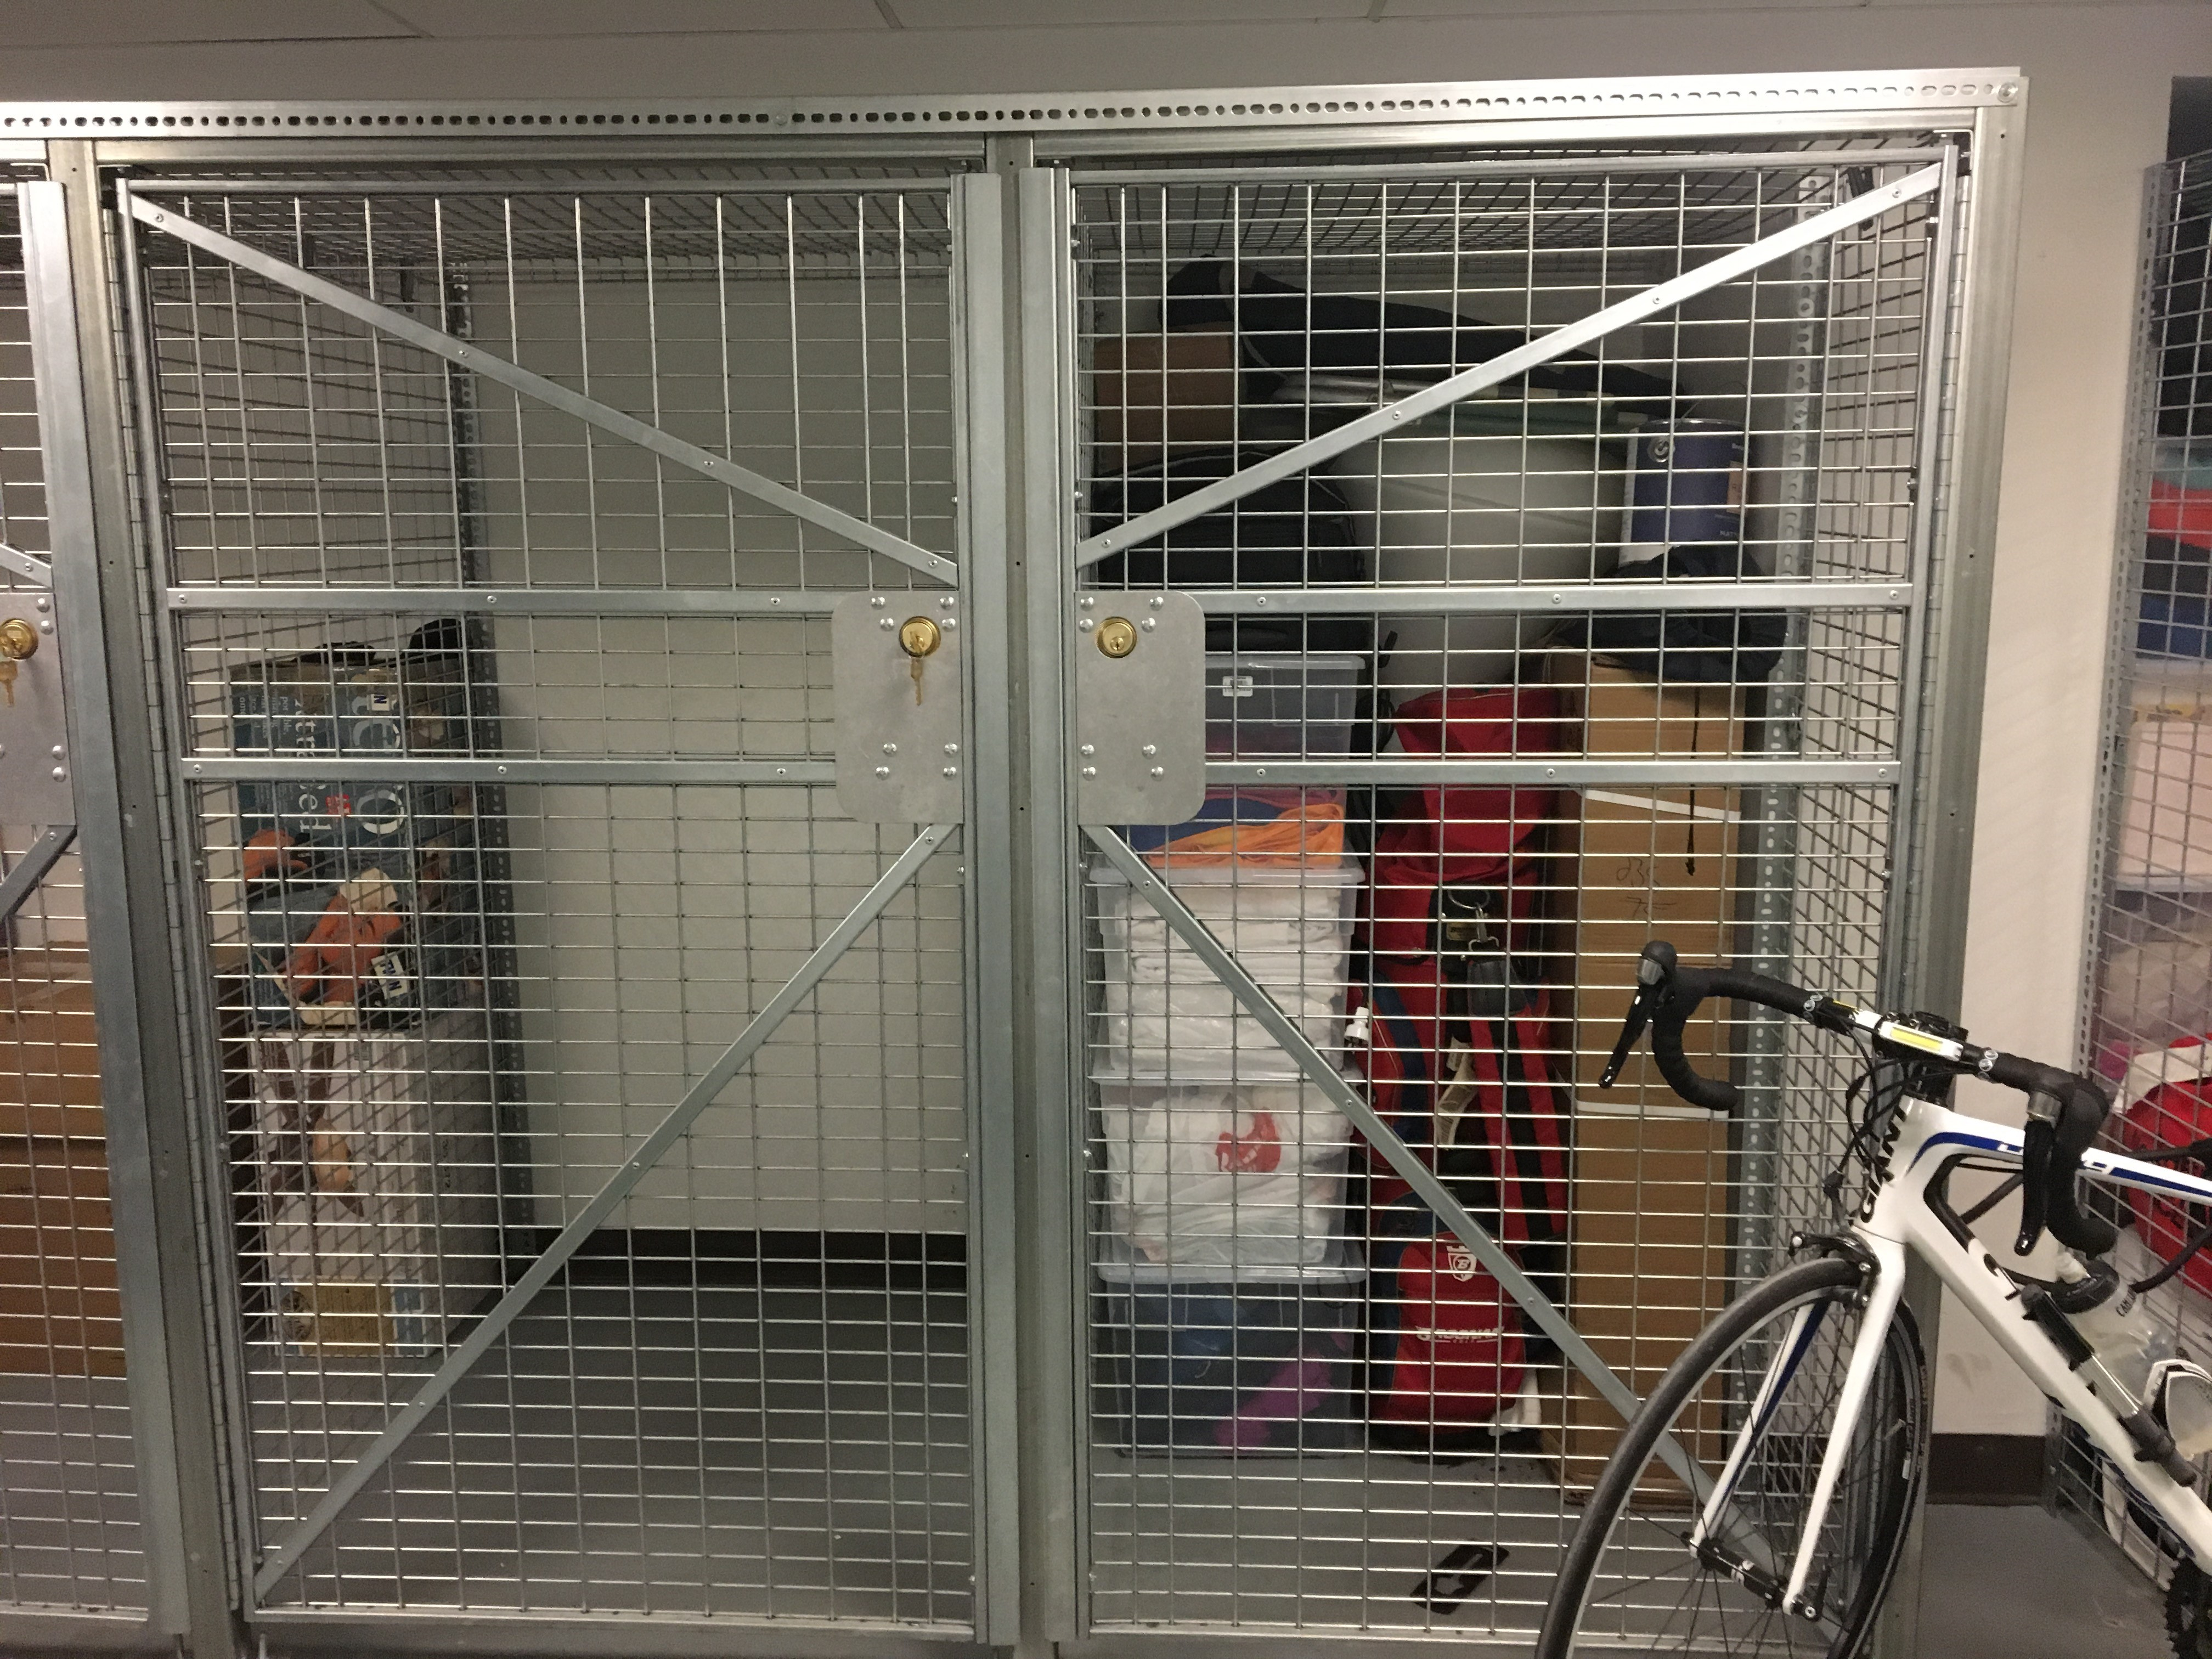 Solent Lockable Shelter Cycle Works Limited Bike Lockers & Bike Cage Storage - Best Cage Design 2018